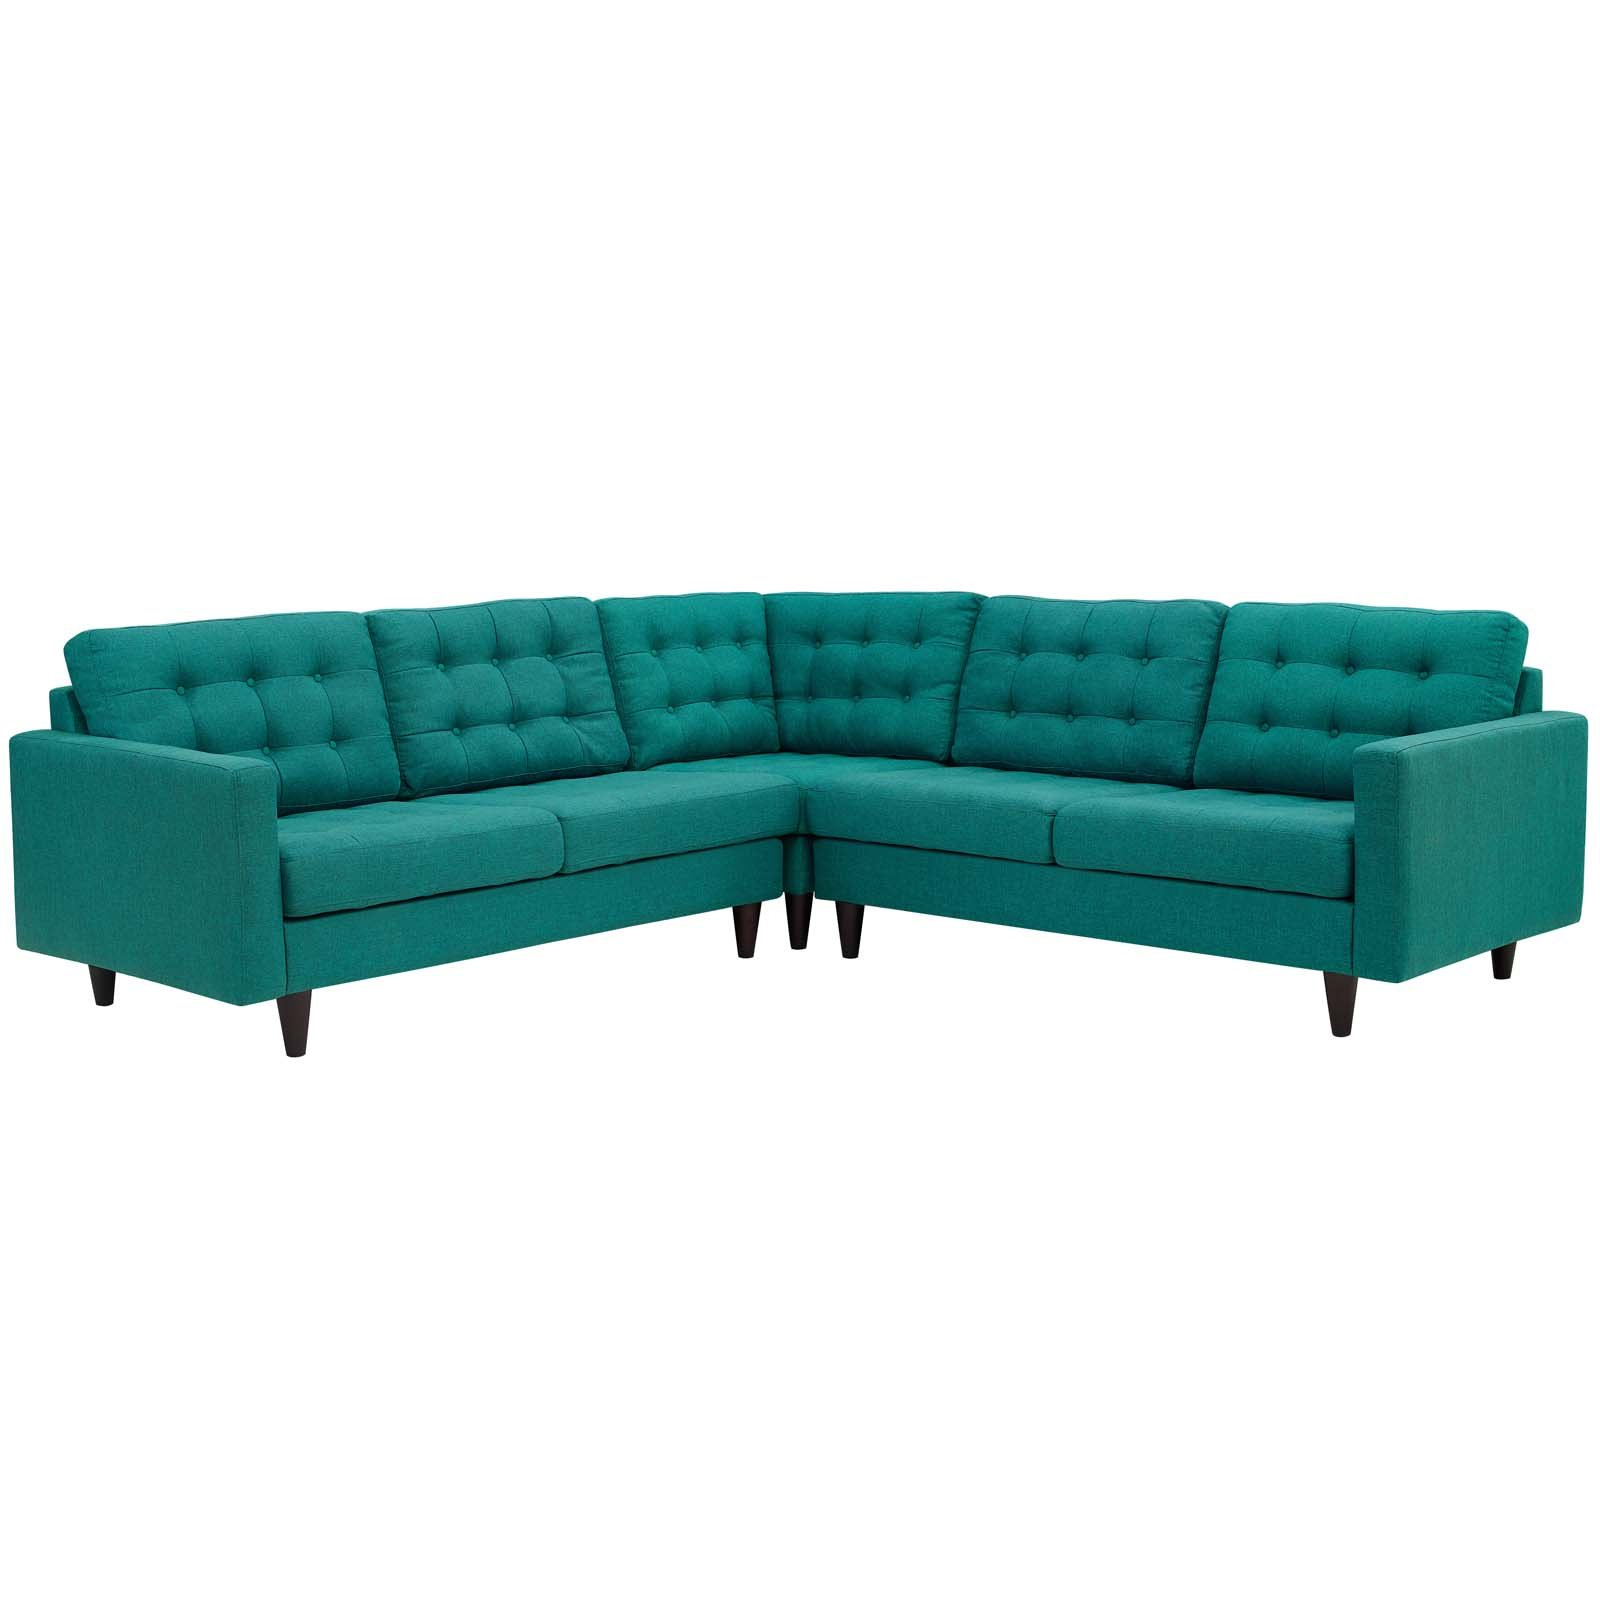 Modway Empress Mid-Century Modern Upholstered Fabric Sectional Sofa Set In Teal by Modway